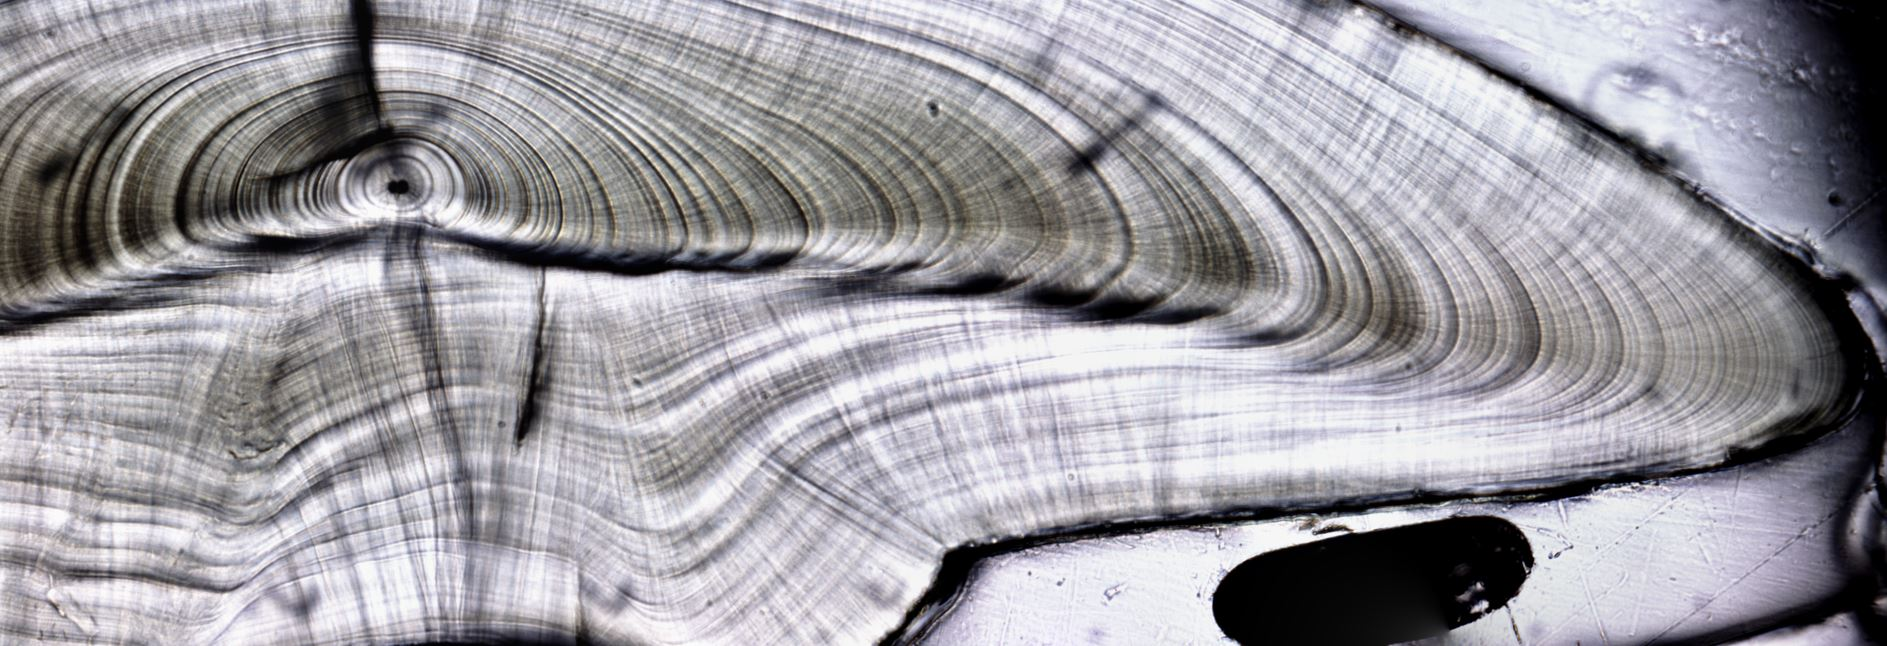 A cross-section of a Longfin Smelt otolith. Due to otolith curvature that develops in larger fish, juvenile and adult Longfin Smelt are mounted and cut in the transverse plane using a diamond-tipped jeweler's saw prior to age and chemical analysis.